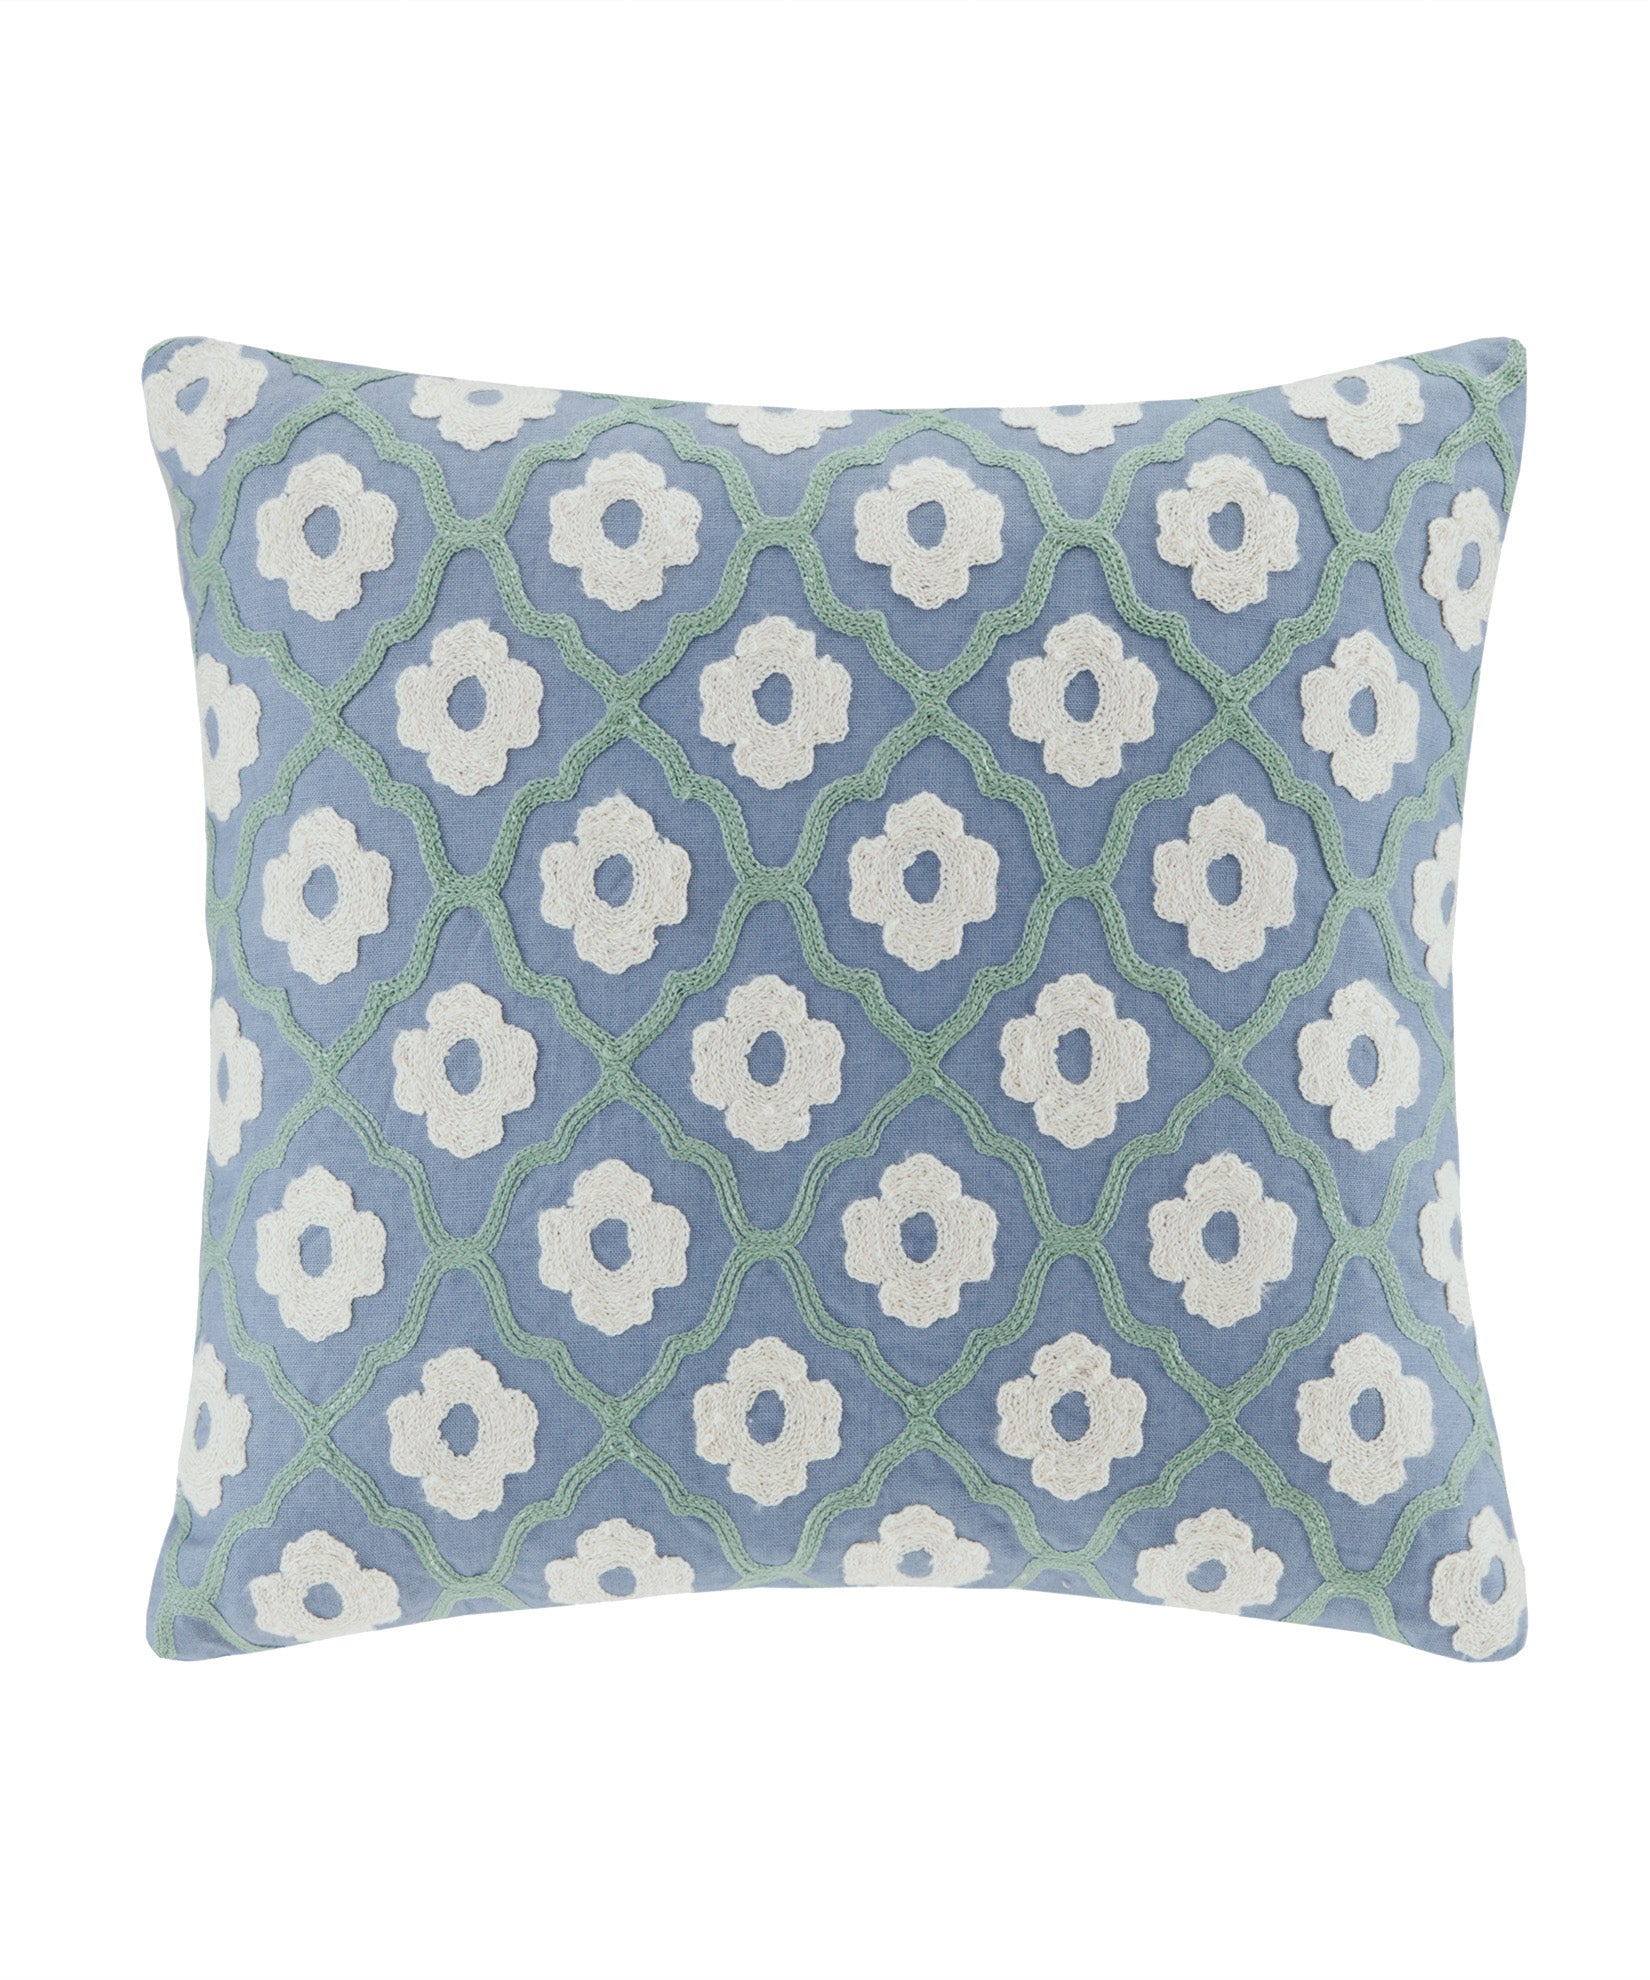 Kamala Square Pillow - Kamala Square Pillow